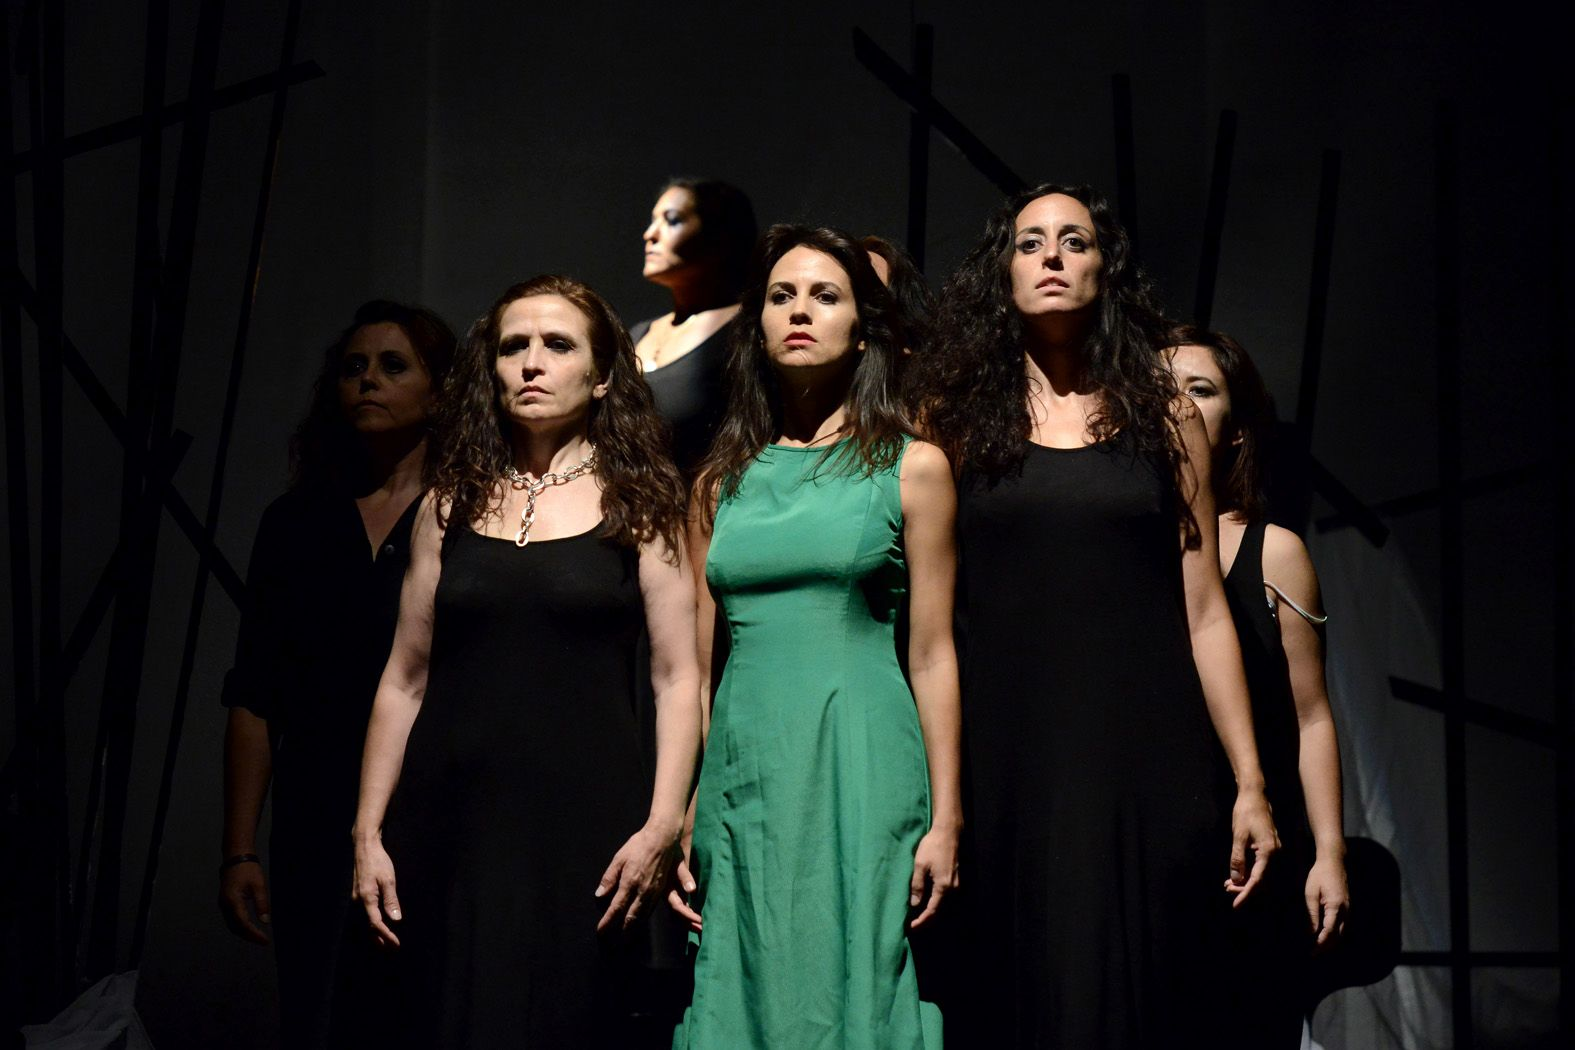 """the house of bernada alba by garcia lorca essay Essay on a doll's house and the house of bernarda alba - federico garcia lorca's """"the house of bernarda alba"""" and henrik ibsen's """"a doll's house"""" both protest against the confinement of women of their days."""